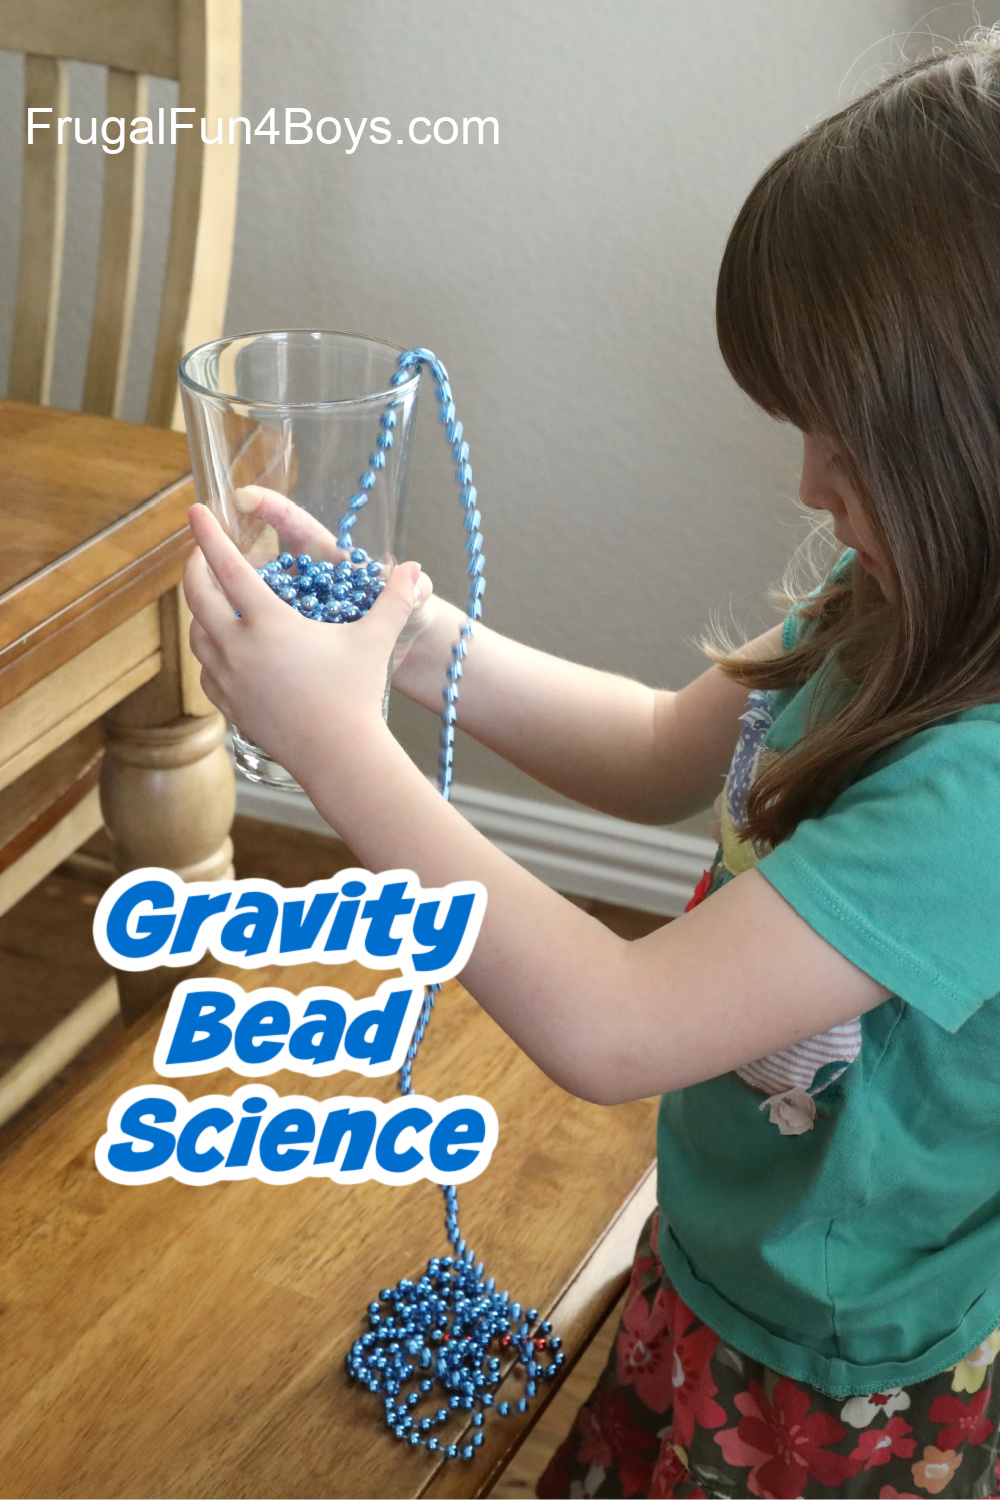 Anti-gravity beads jumping out of a glass